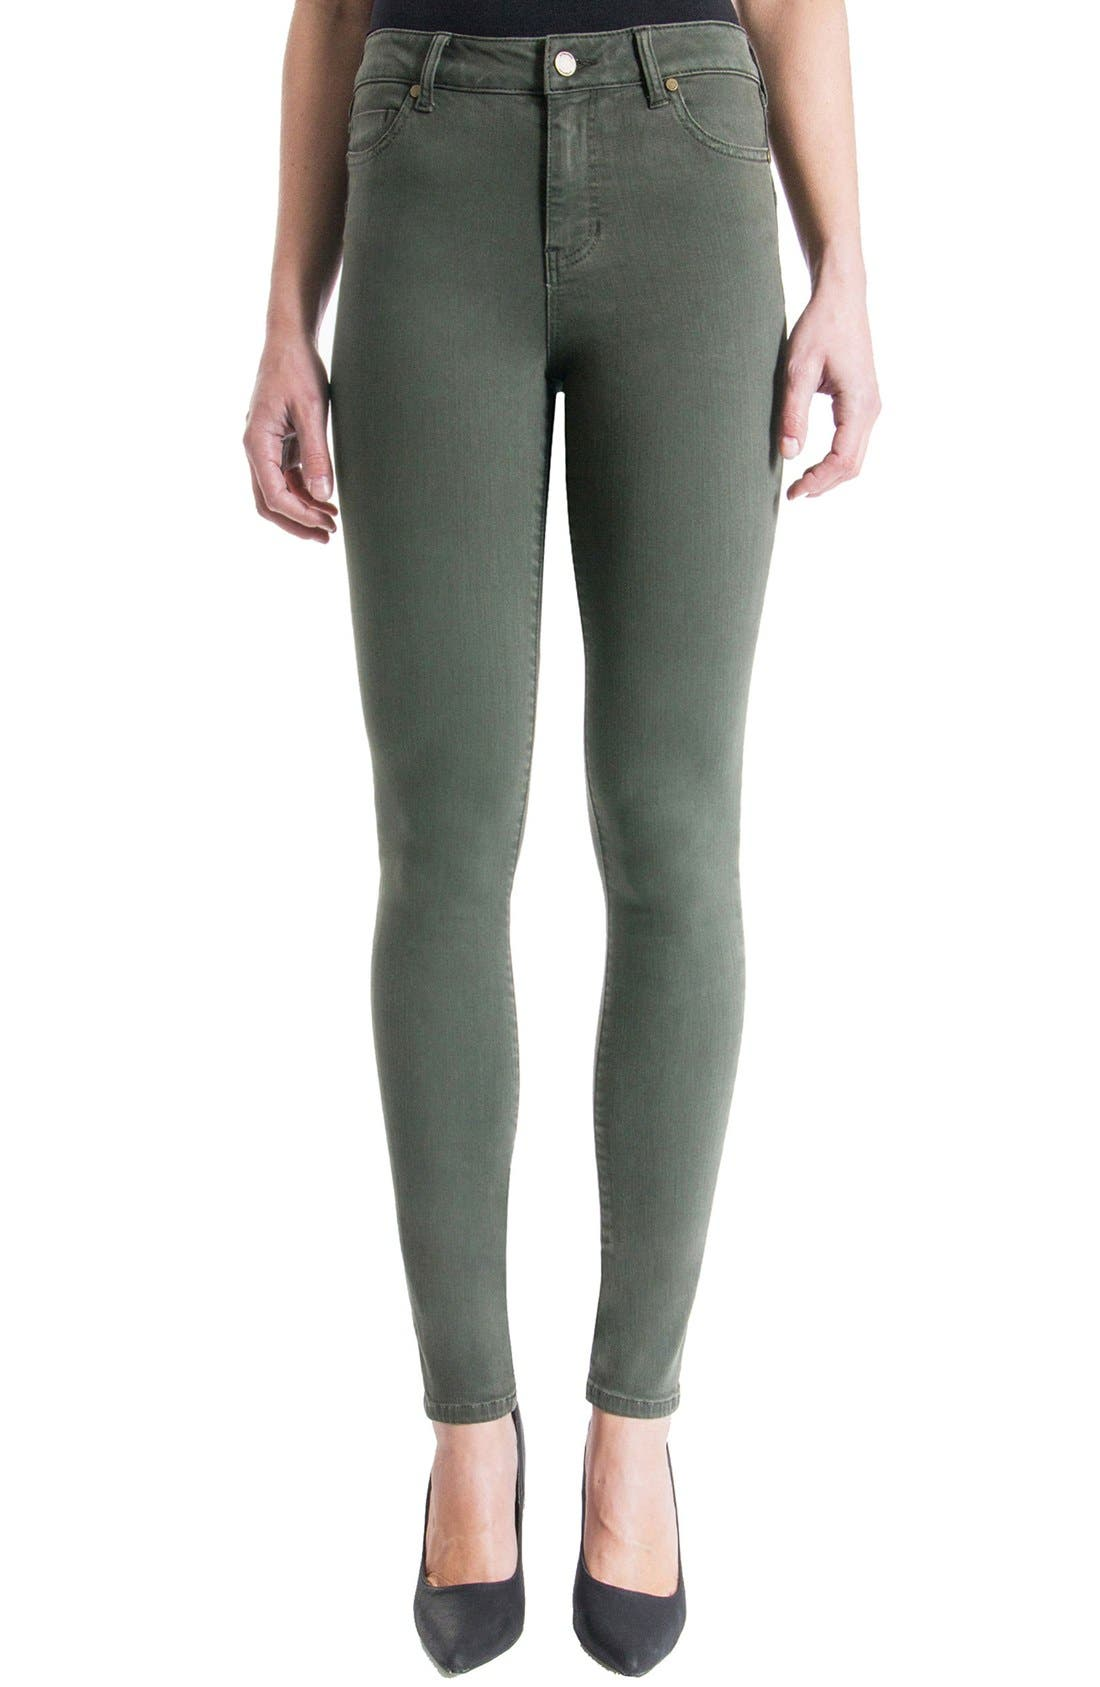 Main Image - Liverpool Jeans Company 'The Hugger Aiden' Stretch Skinny Jeans (Cypress Dark Olive)